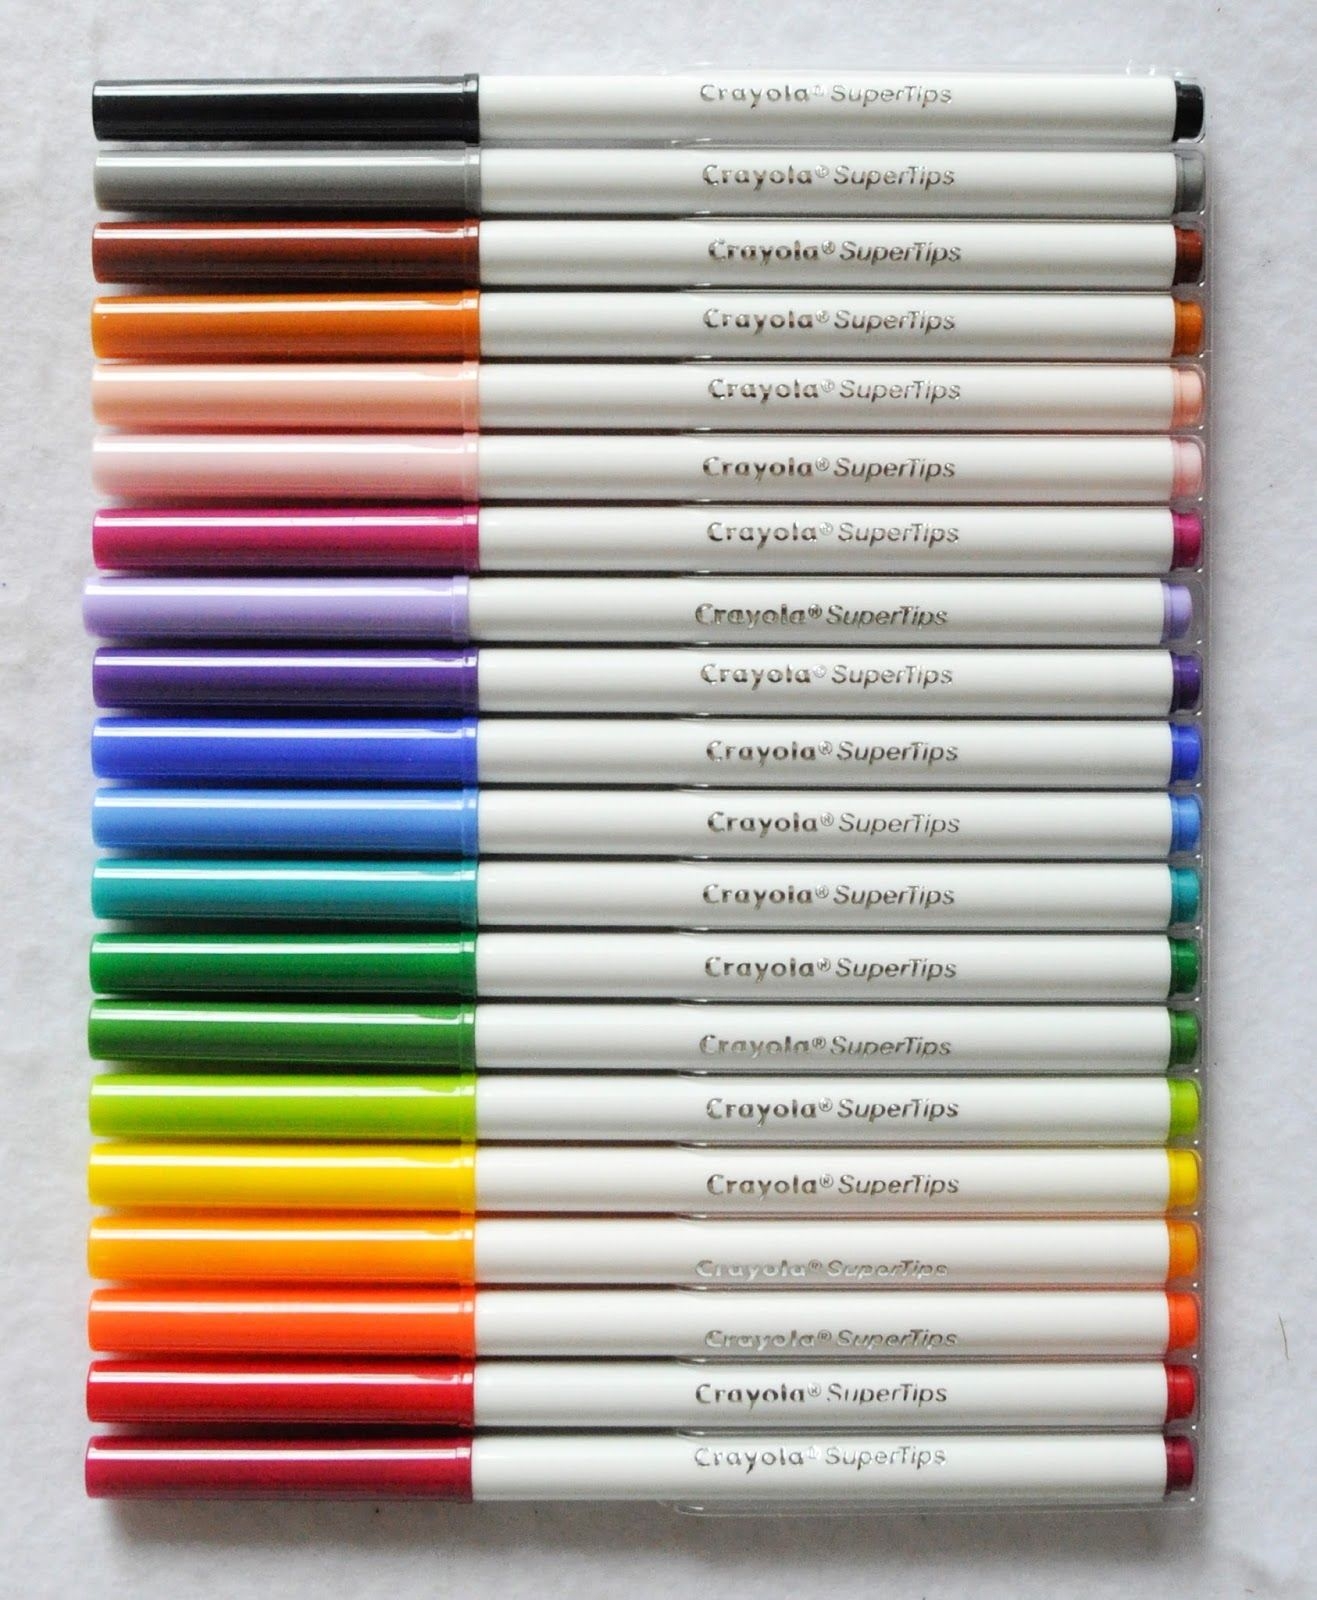 Crayola Super Tips Markers What S Inside The Box